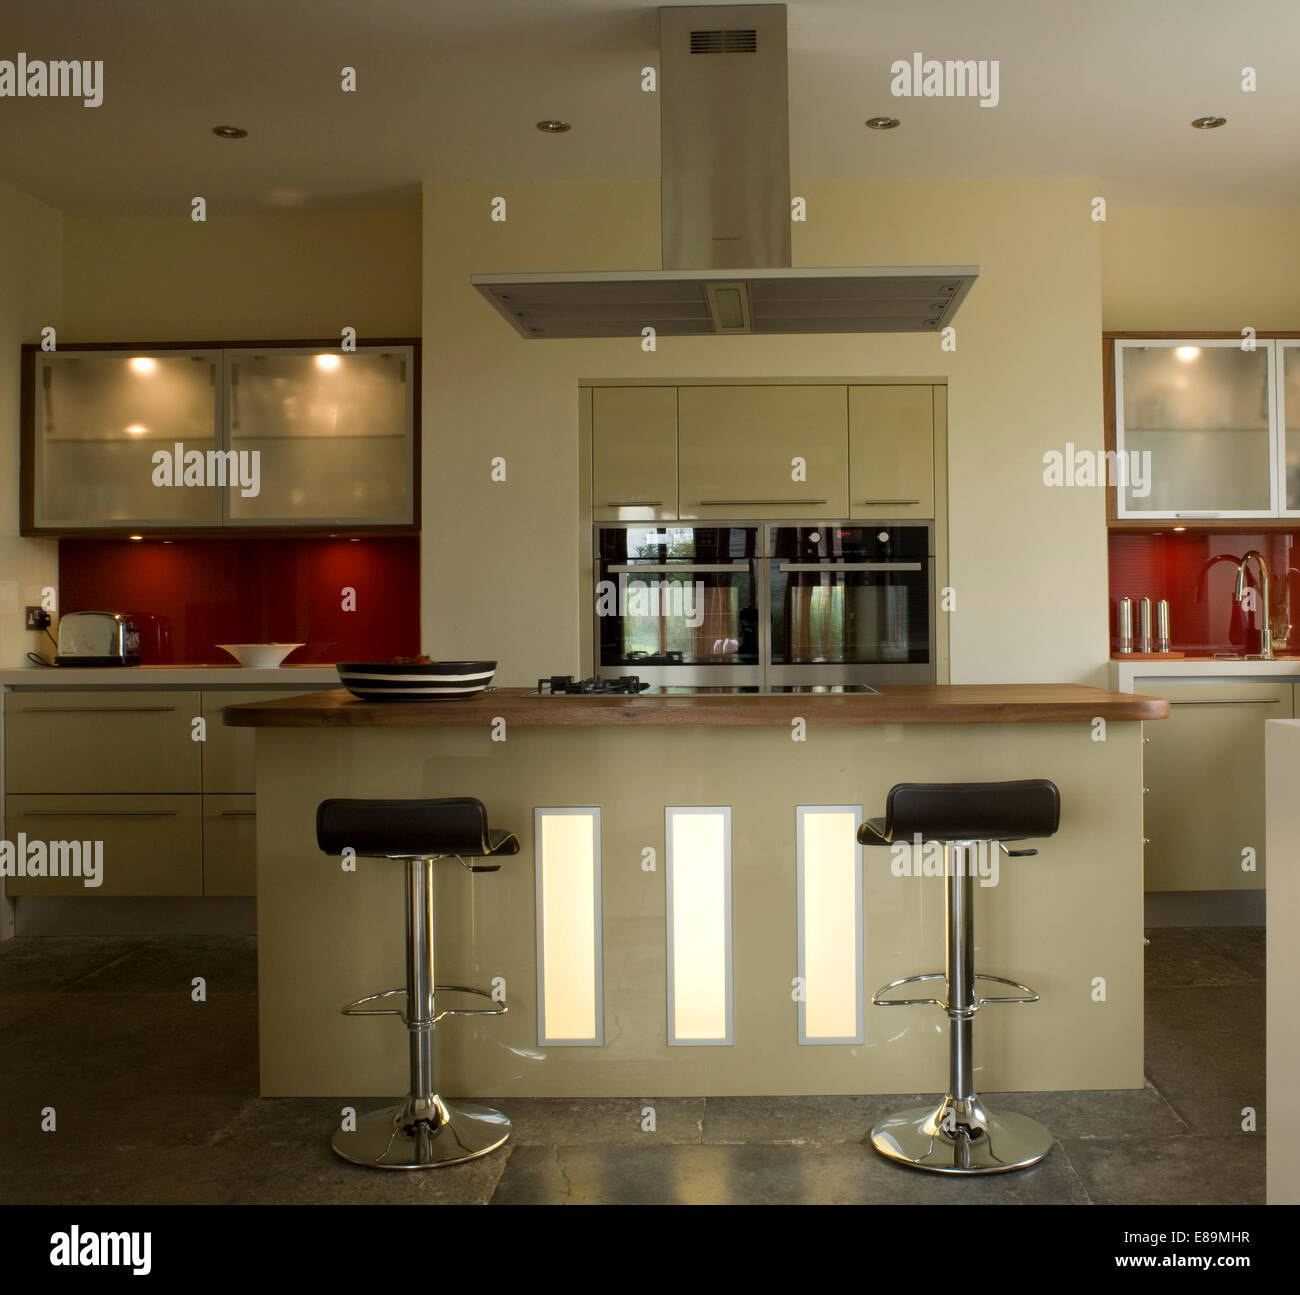 Bar stools at central island breakfast bar in modern kitchen with ...